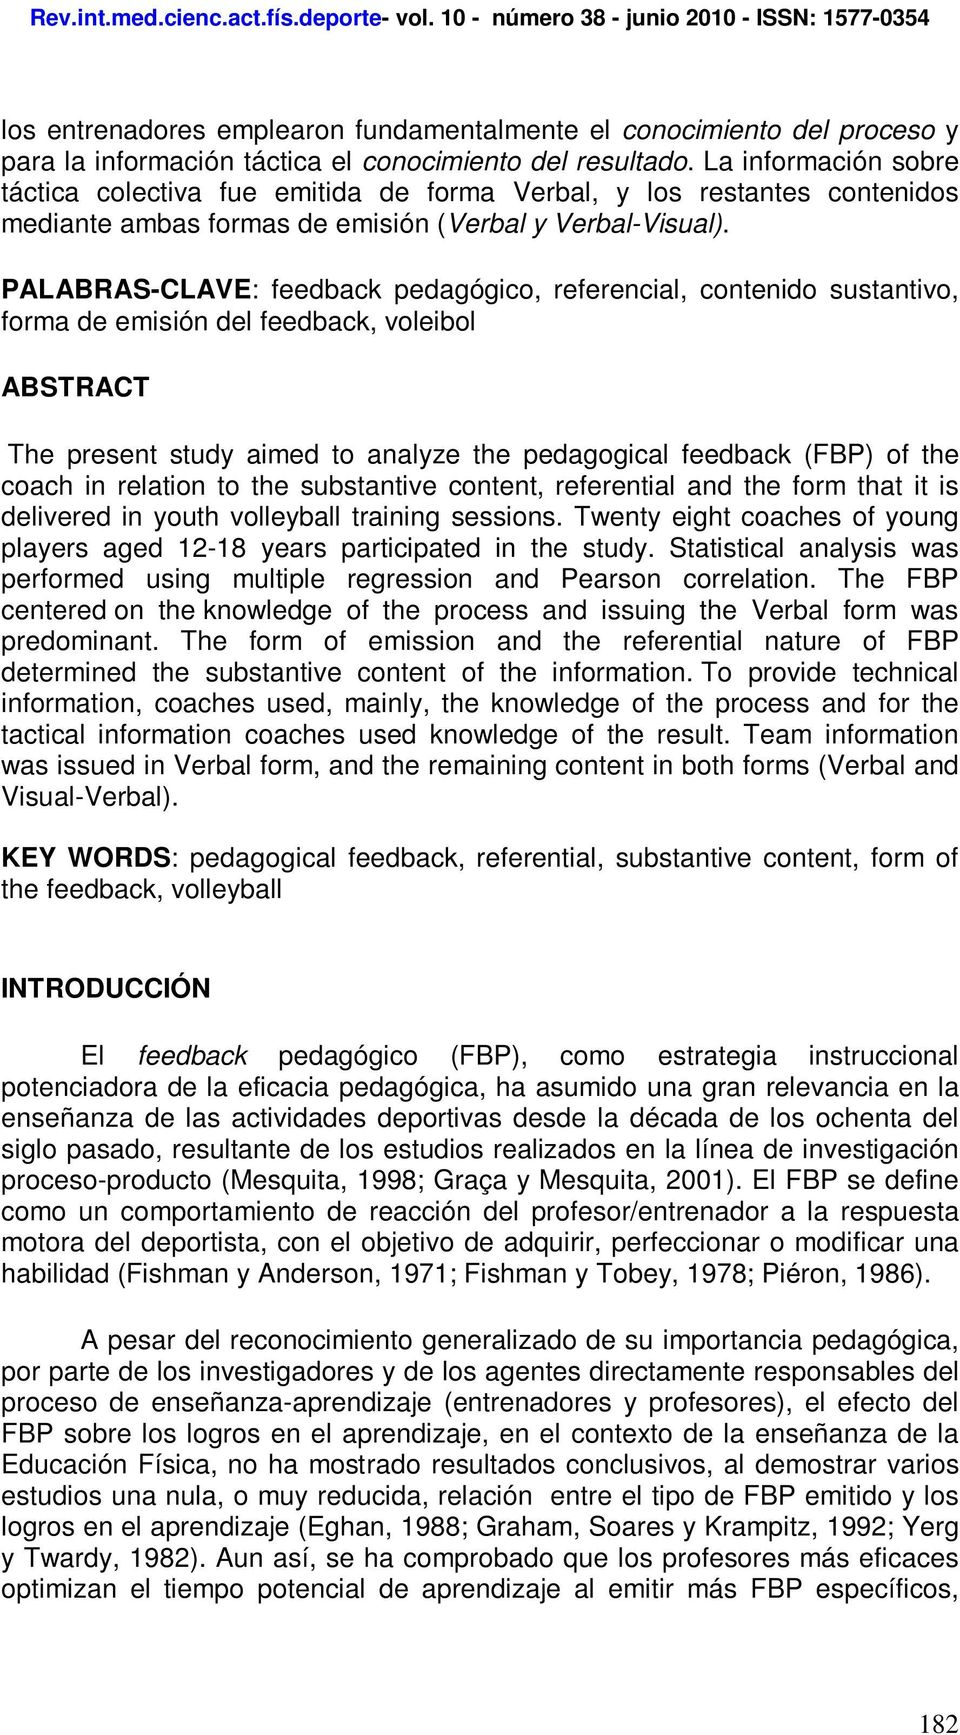 PALABRAS-CLAVE: feedback pedagógico, referencial, contenido sustantivo, forma de emisión del feedback, voleibol ABSTRACT The present study aimed to analyze the pedagogical feedback (FBP) of the coach